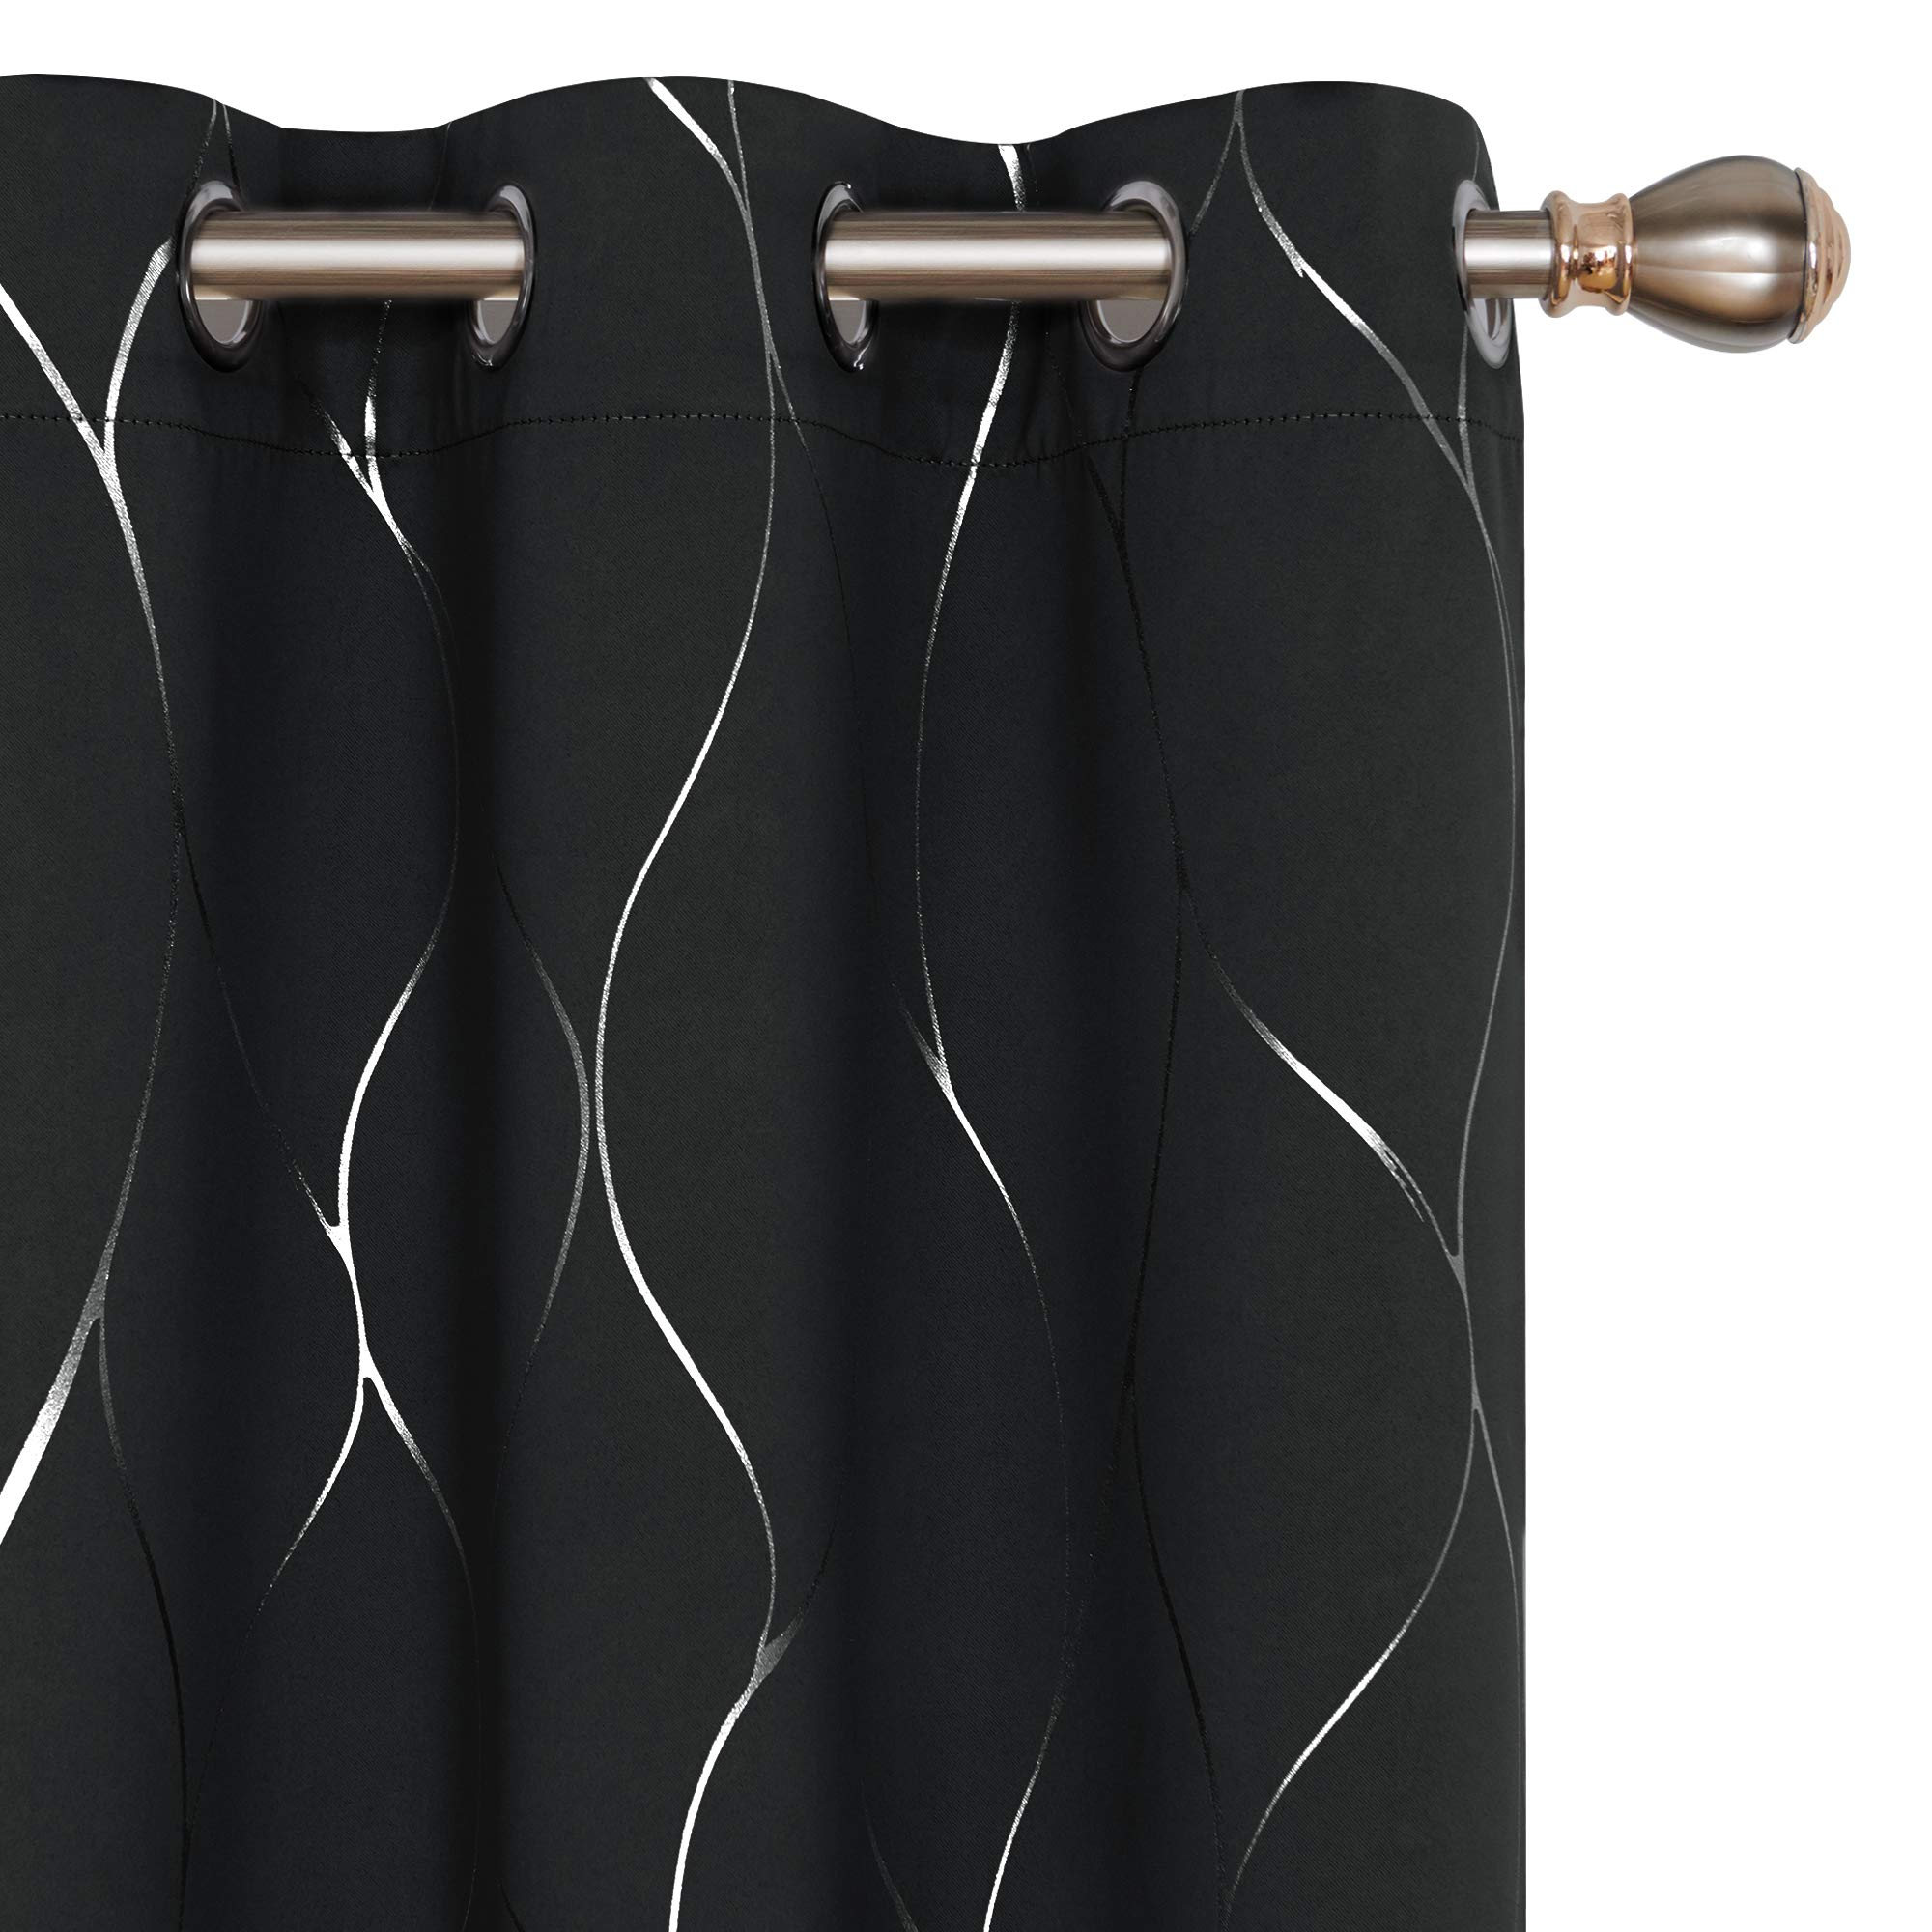 Deconovo Blackout Curtains Wave Foil Print Pattern Room Darkening Curtain Thermal Insulated Window Energy Saving Drapes for Bedroom 42W x 63L Inch Set of 2 Panels Black